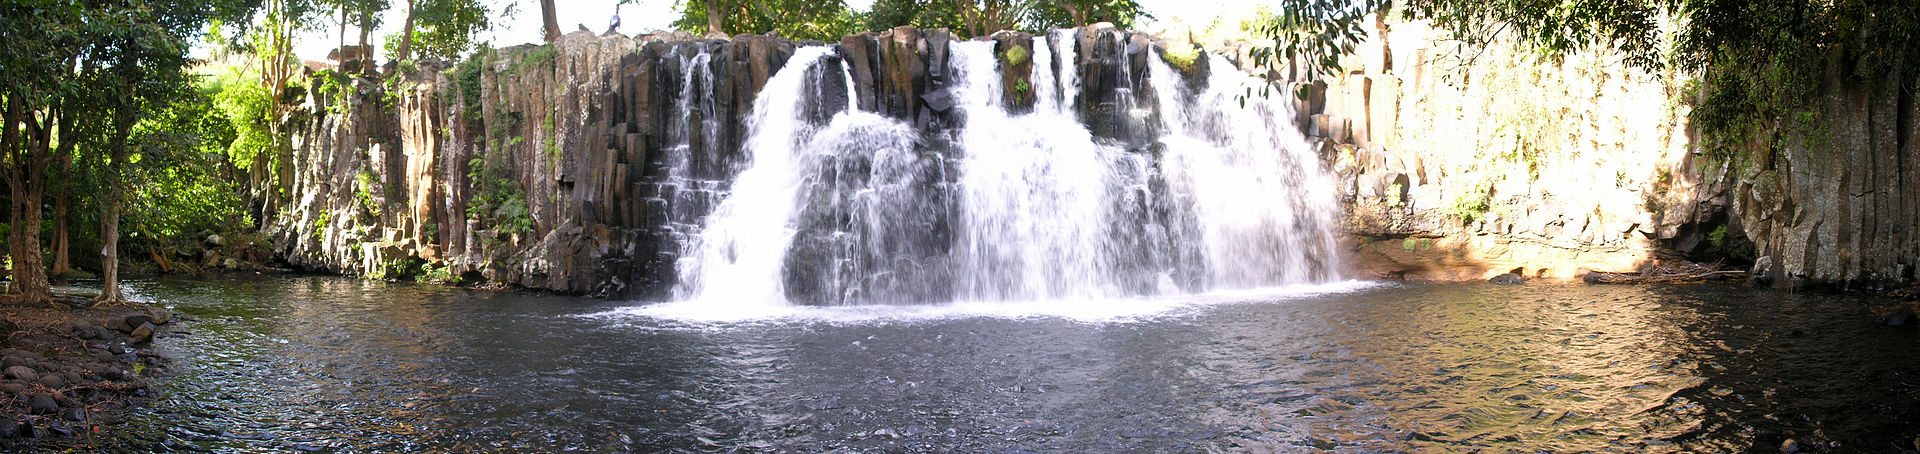 Rochester Falls - Things to Do in Mauritius